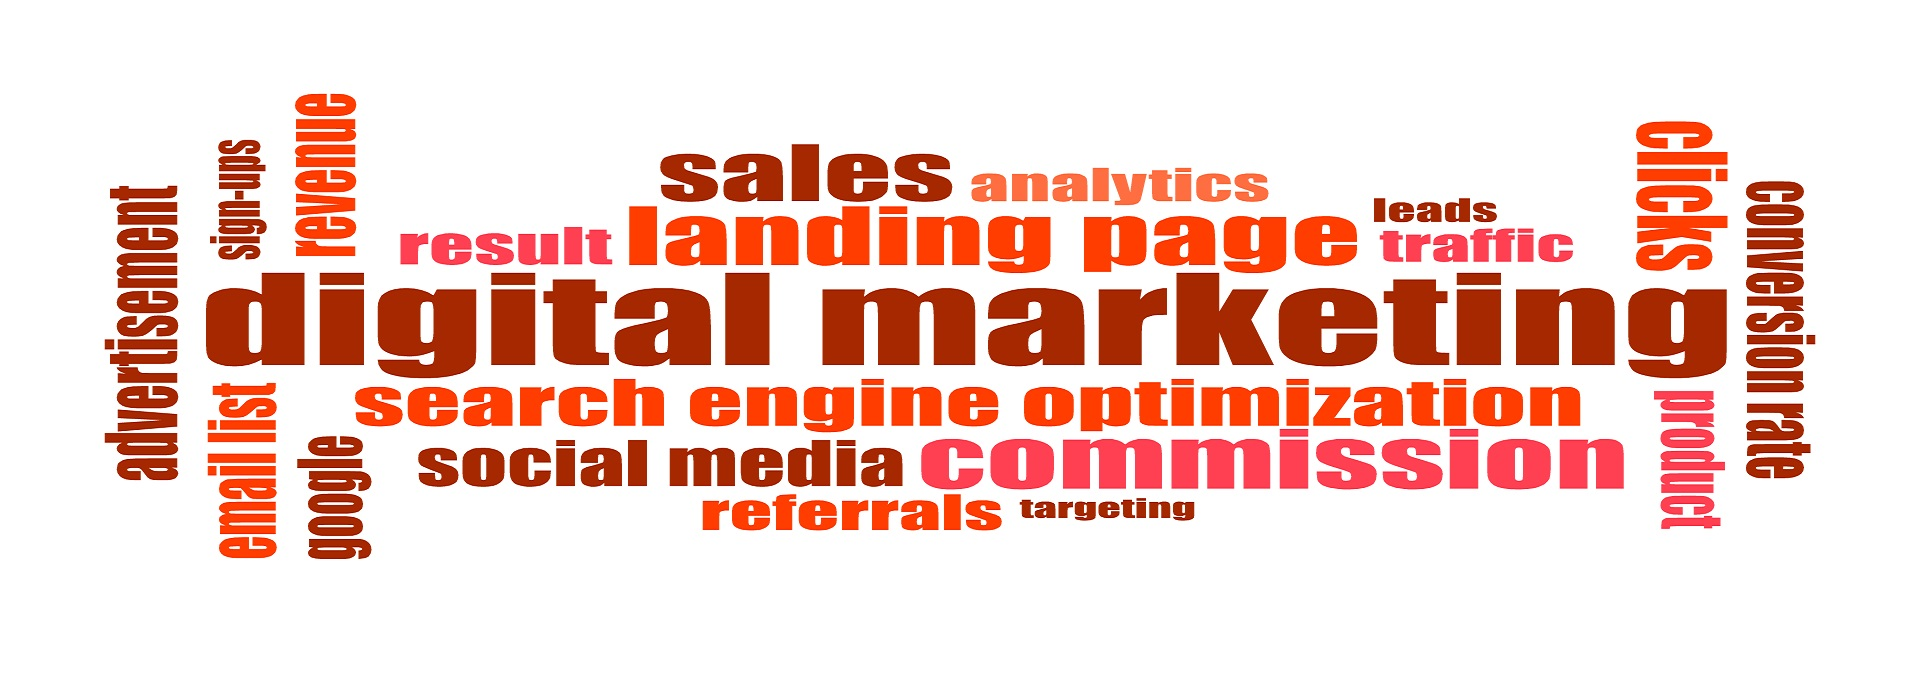 Digital marketing; It consists of many moving parts such as SEO, social media, marketing automation, PPC and others.